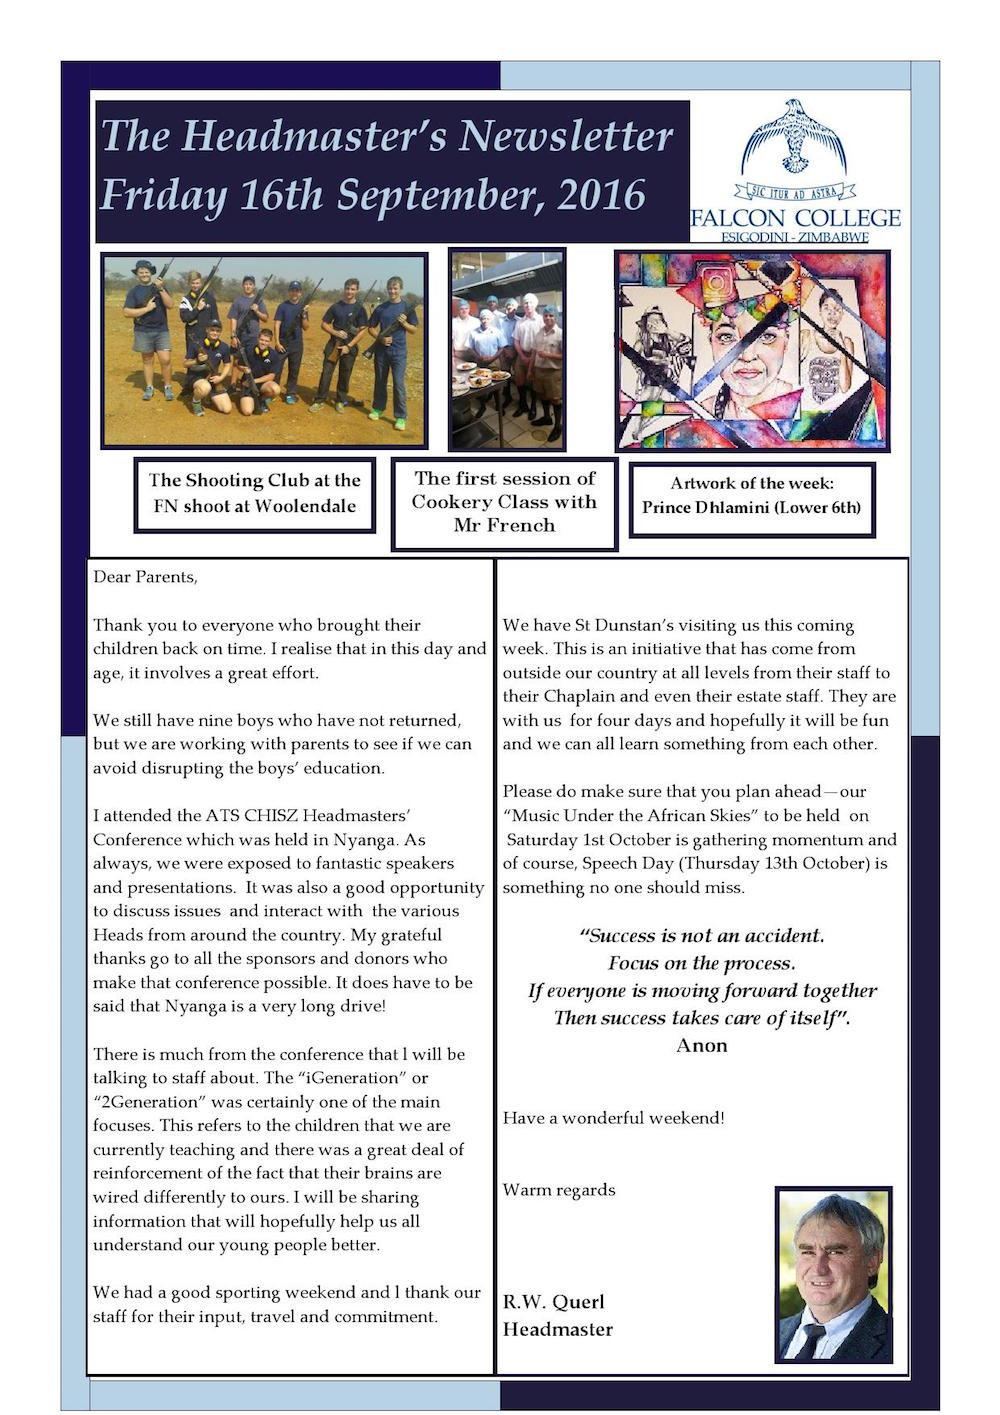 headmasters-newsletter-friday-16th-september-2016-edited_000001